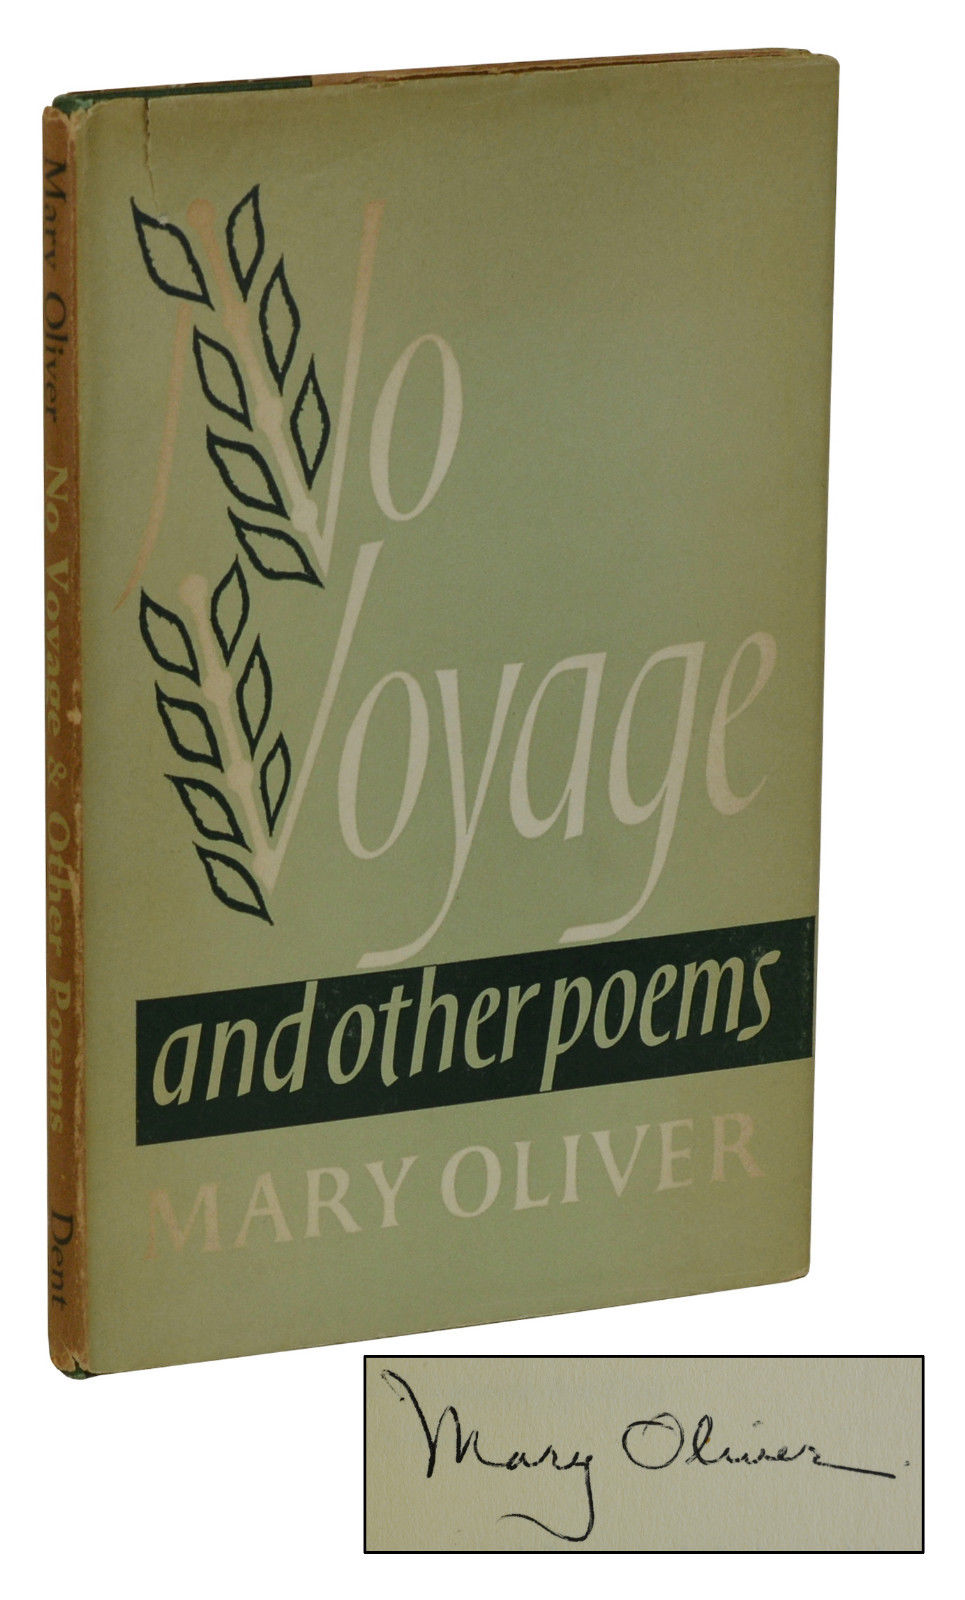 No Voyage Oliver, Mary